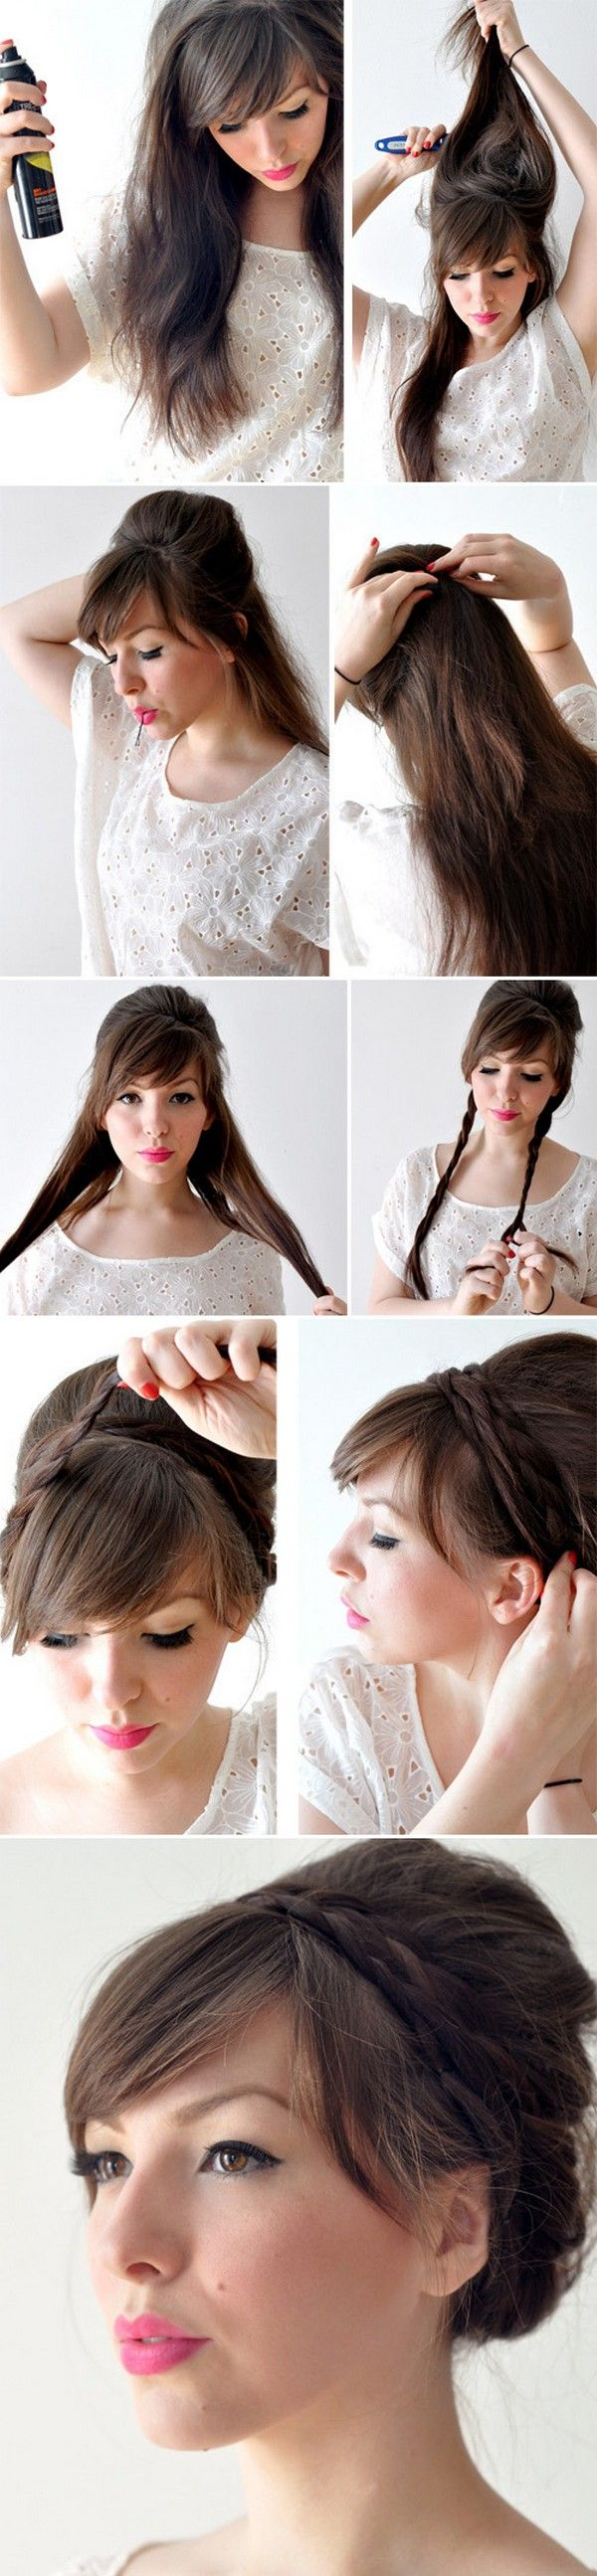 Holiday-Braided-Updo-Hairstyle-for-Medium-Long-Hair-Tutorial.jpg 600×2 590 pixels. I love the bangs